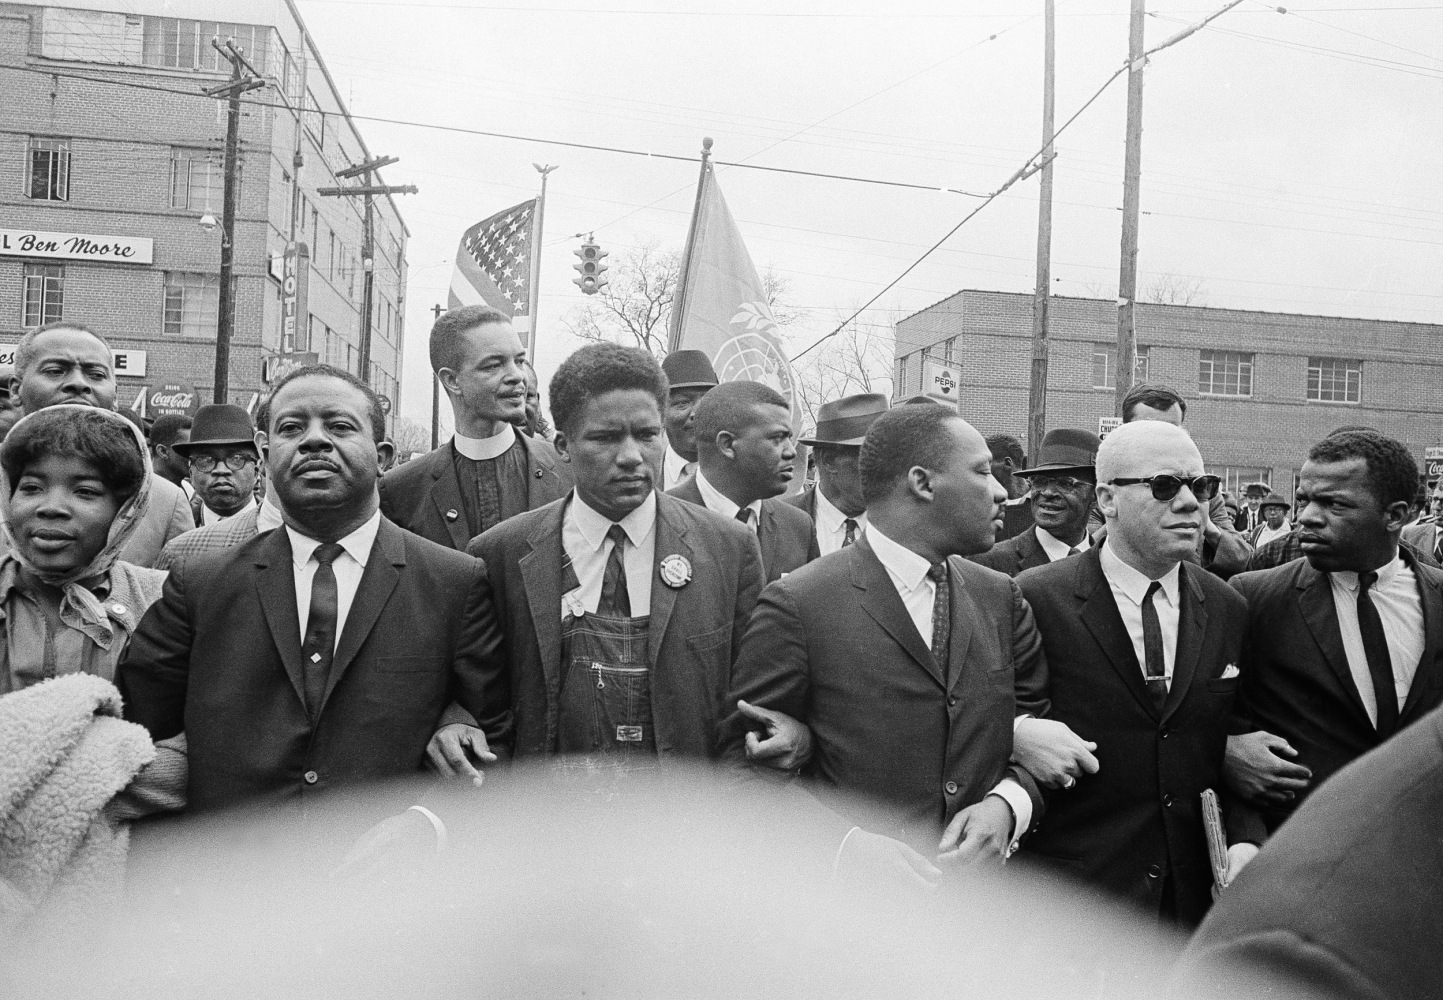 Image: John Lewis marches with Martin Luther King Jr.